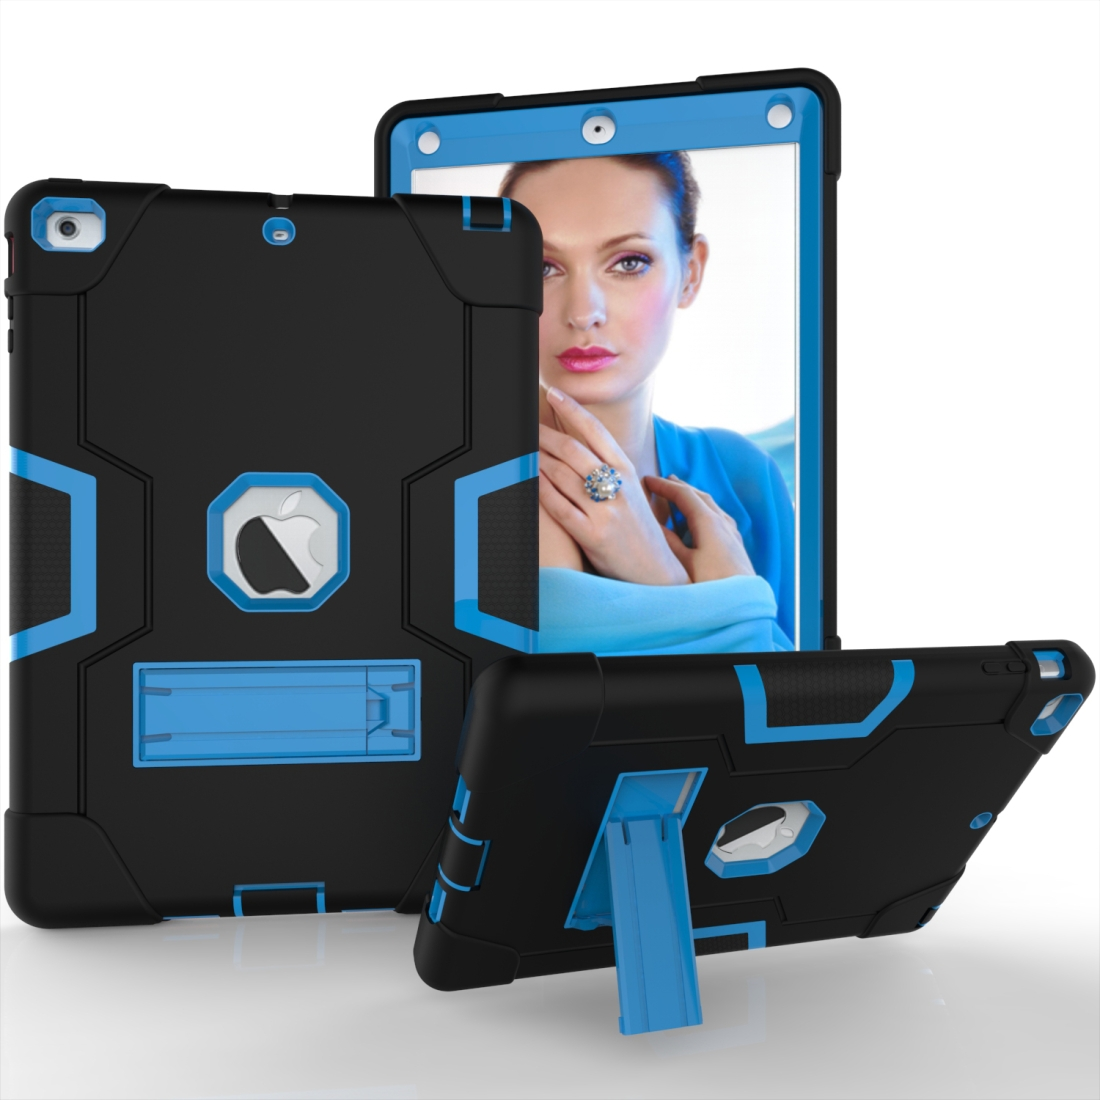 iPad Air Cover Featuring Contrasting Colors In A Tough Durable Protective Armor Case (Black/Blue)